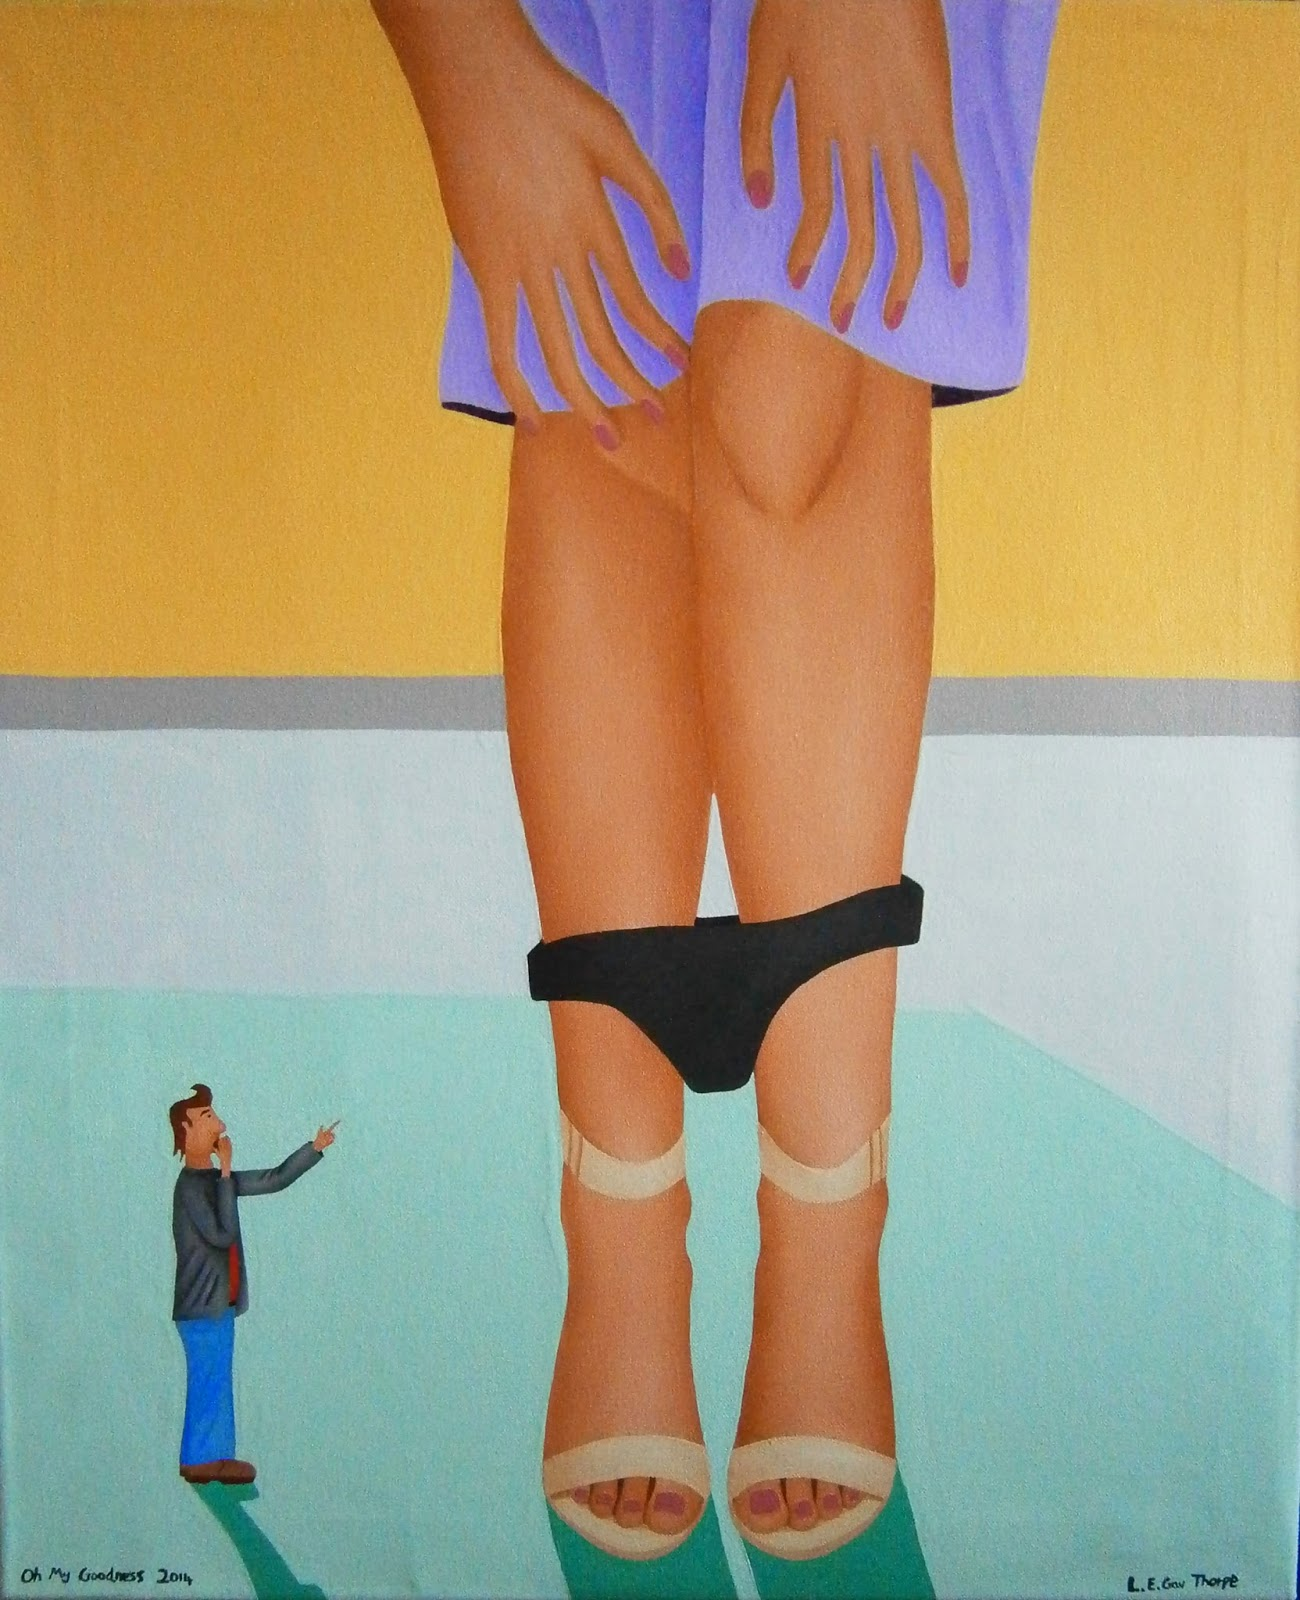 A shrunken man pointing at a woman whose knickers have fallen down.